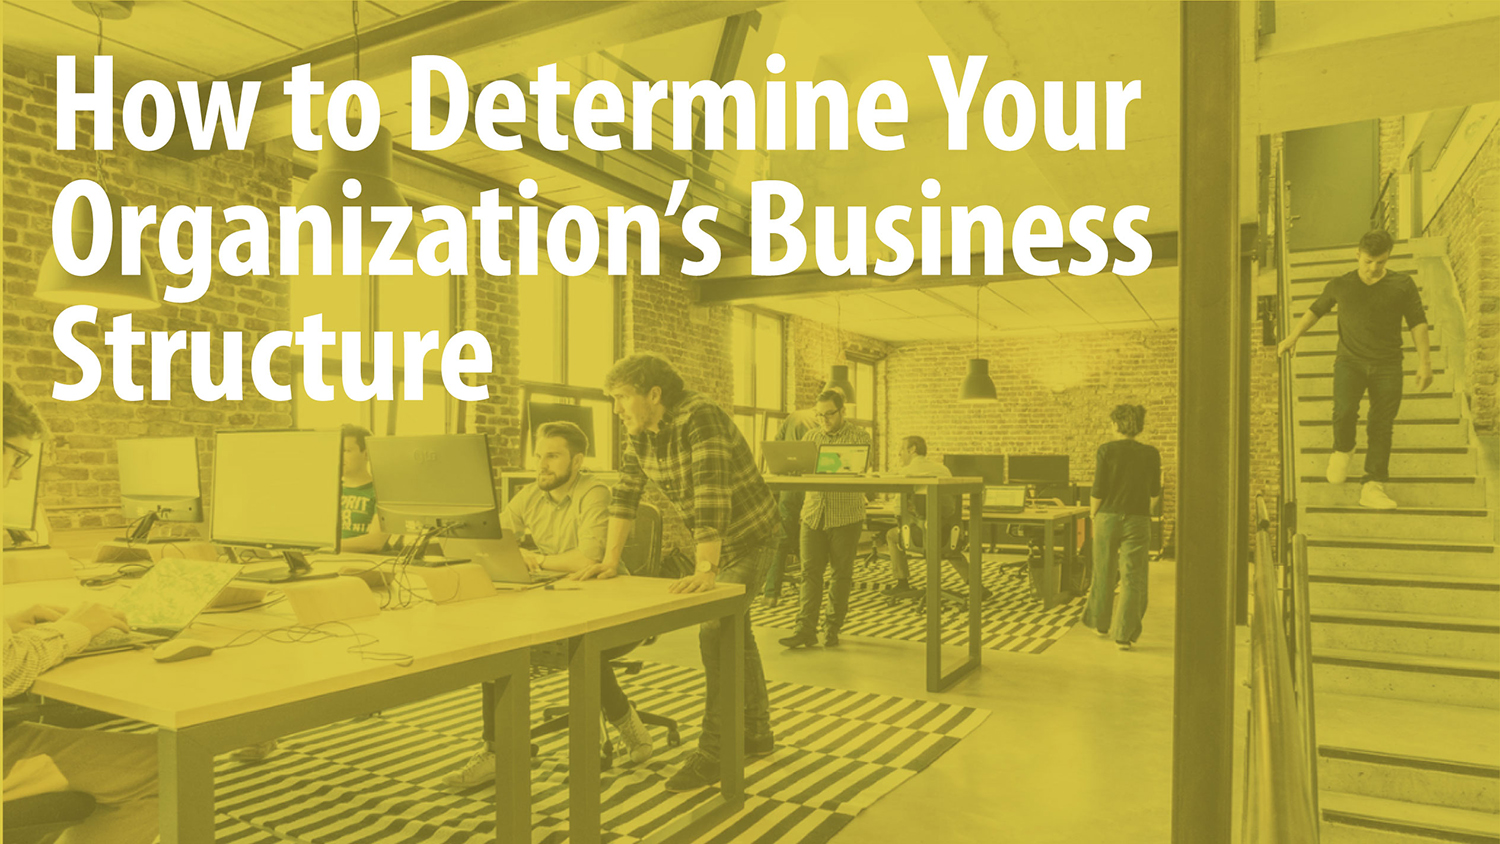 How to Determine Your Organization's Business Structure